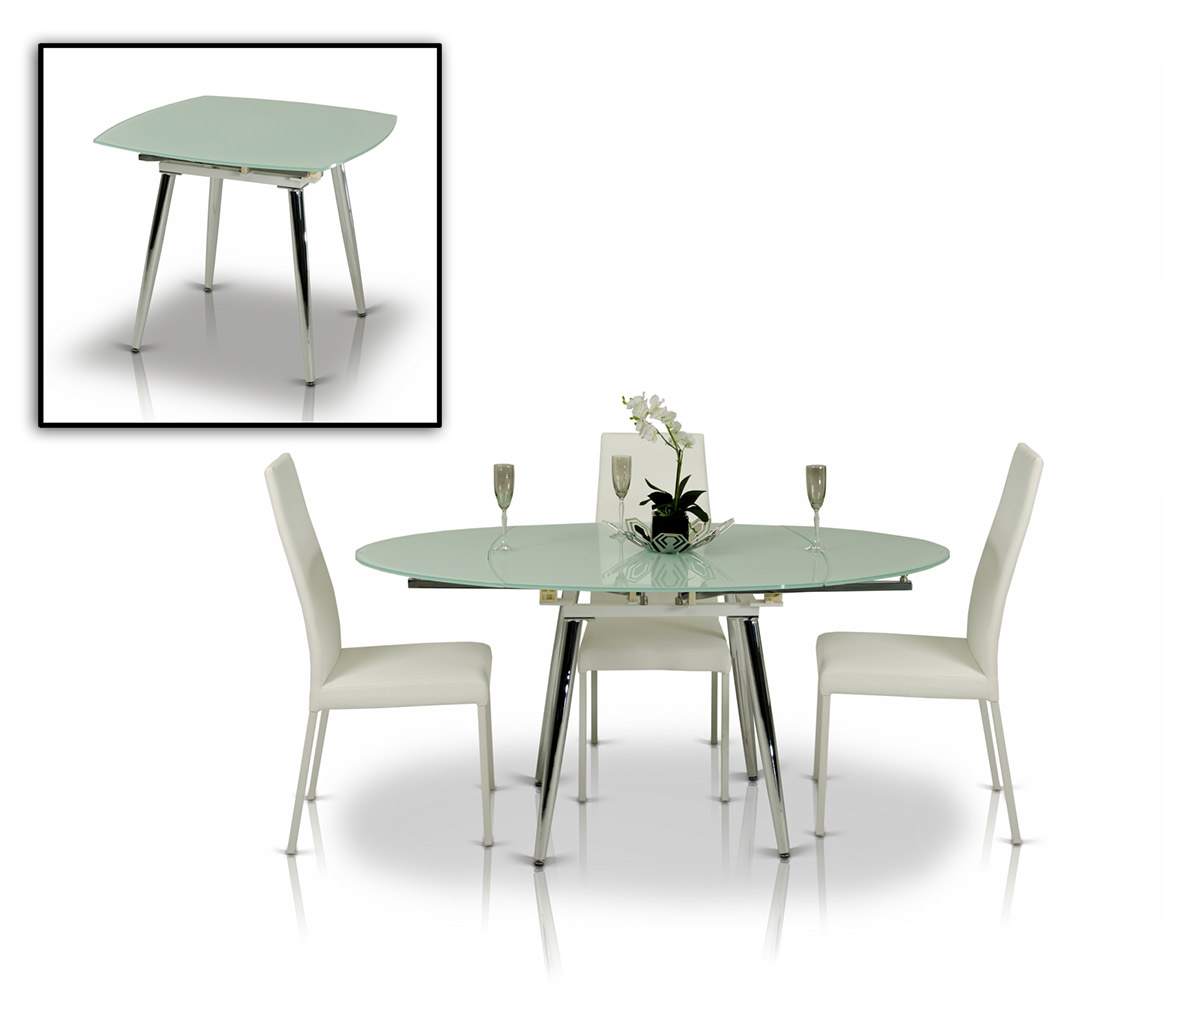 VIG Modrest Brunch White Extendable Dining Table Available Online In Dallas  Fort Worth Texas. Please Upgrade To Full Version Of Magic Zoom™